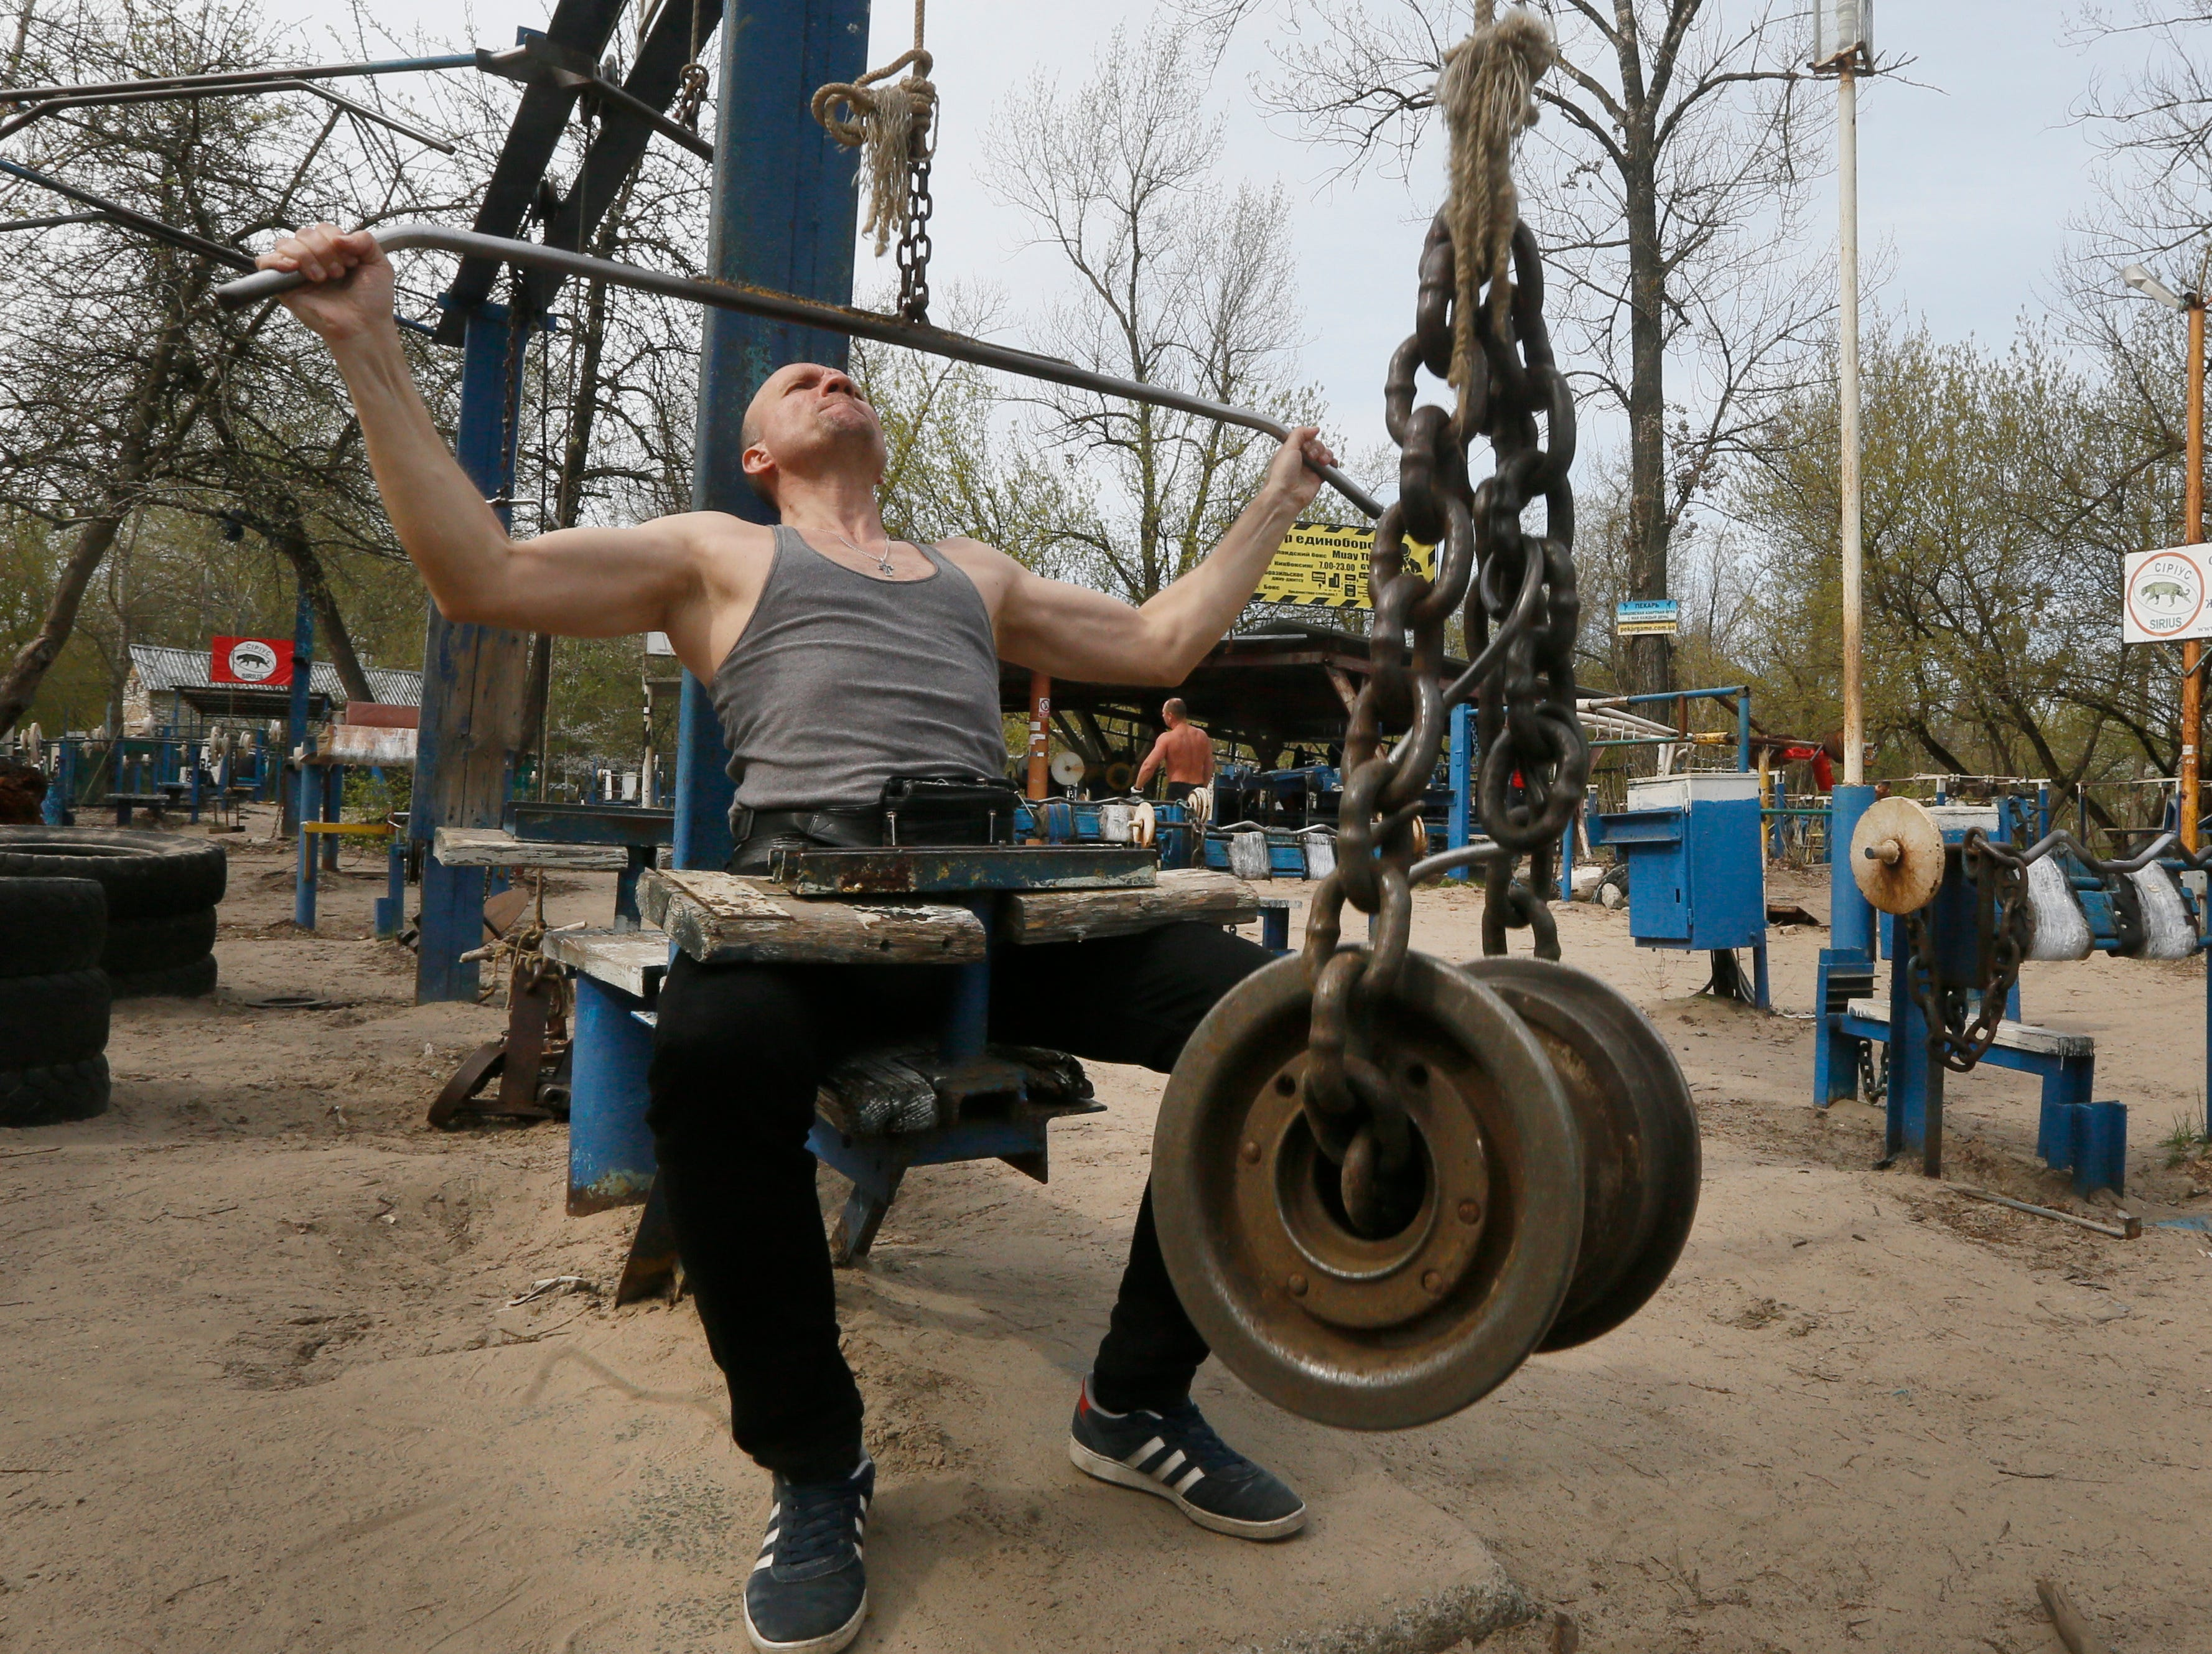 A man lifts metal weights in a scrap metal outdoor gym in a city park on the Dnipro river bank in Ukraine's capital Kiev on Thursday, April 18, 2019.